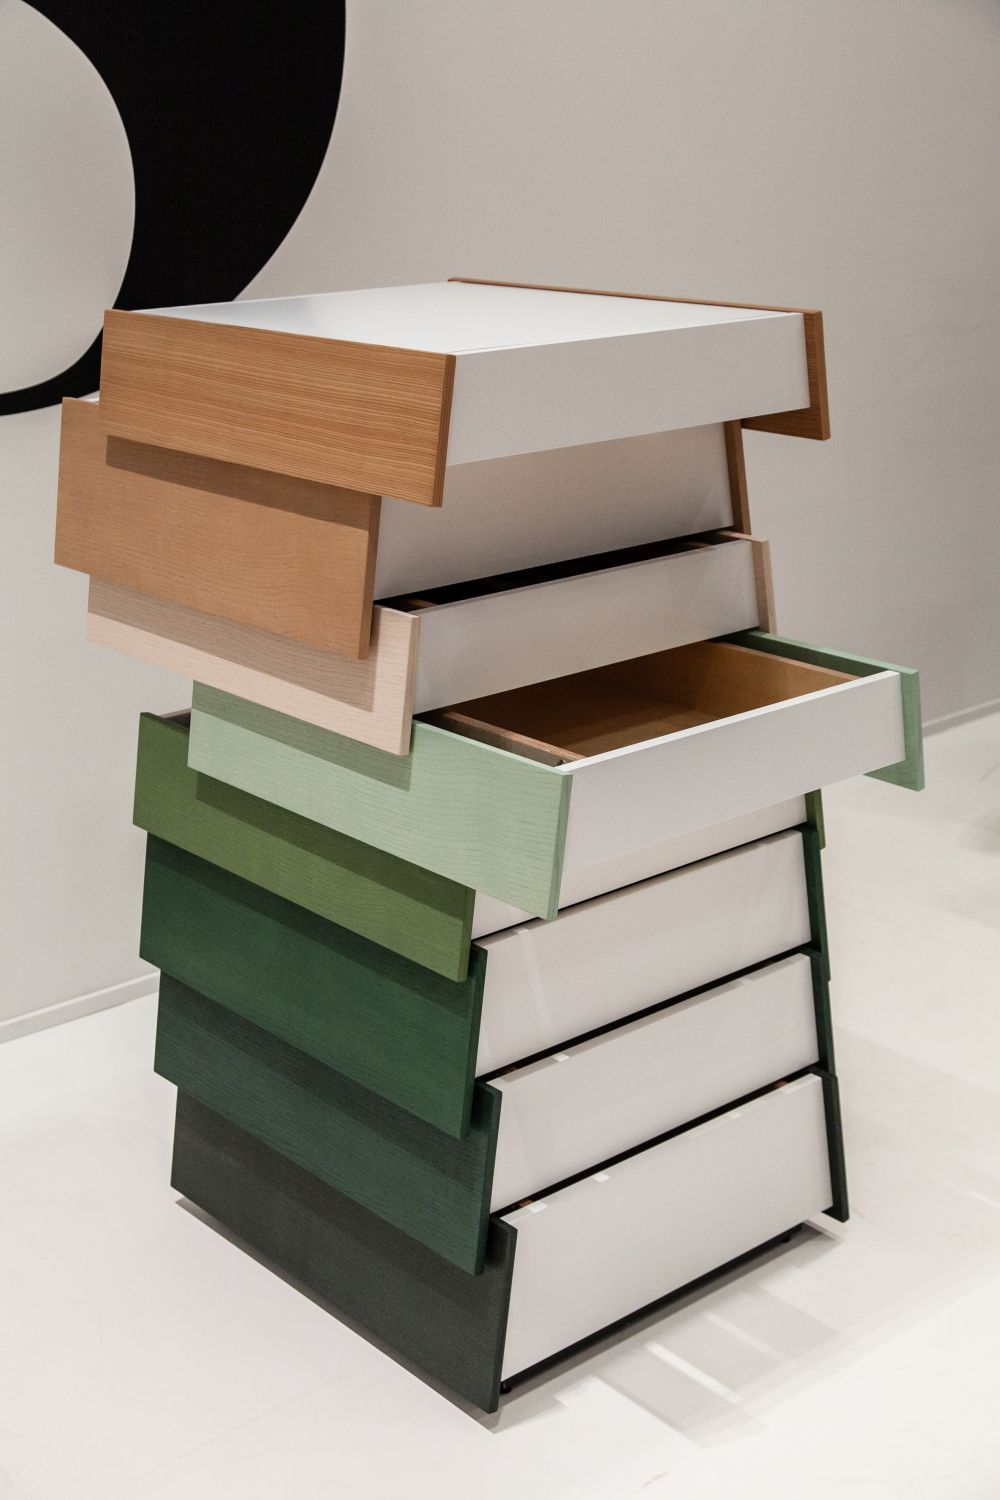 Sculptural chest of drawers with drawers that open in both directions